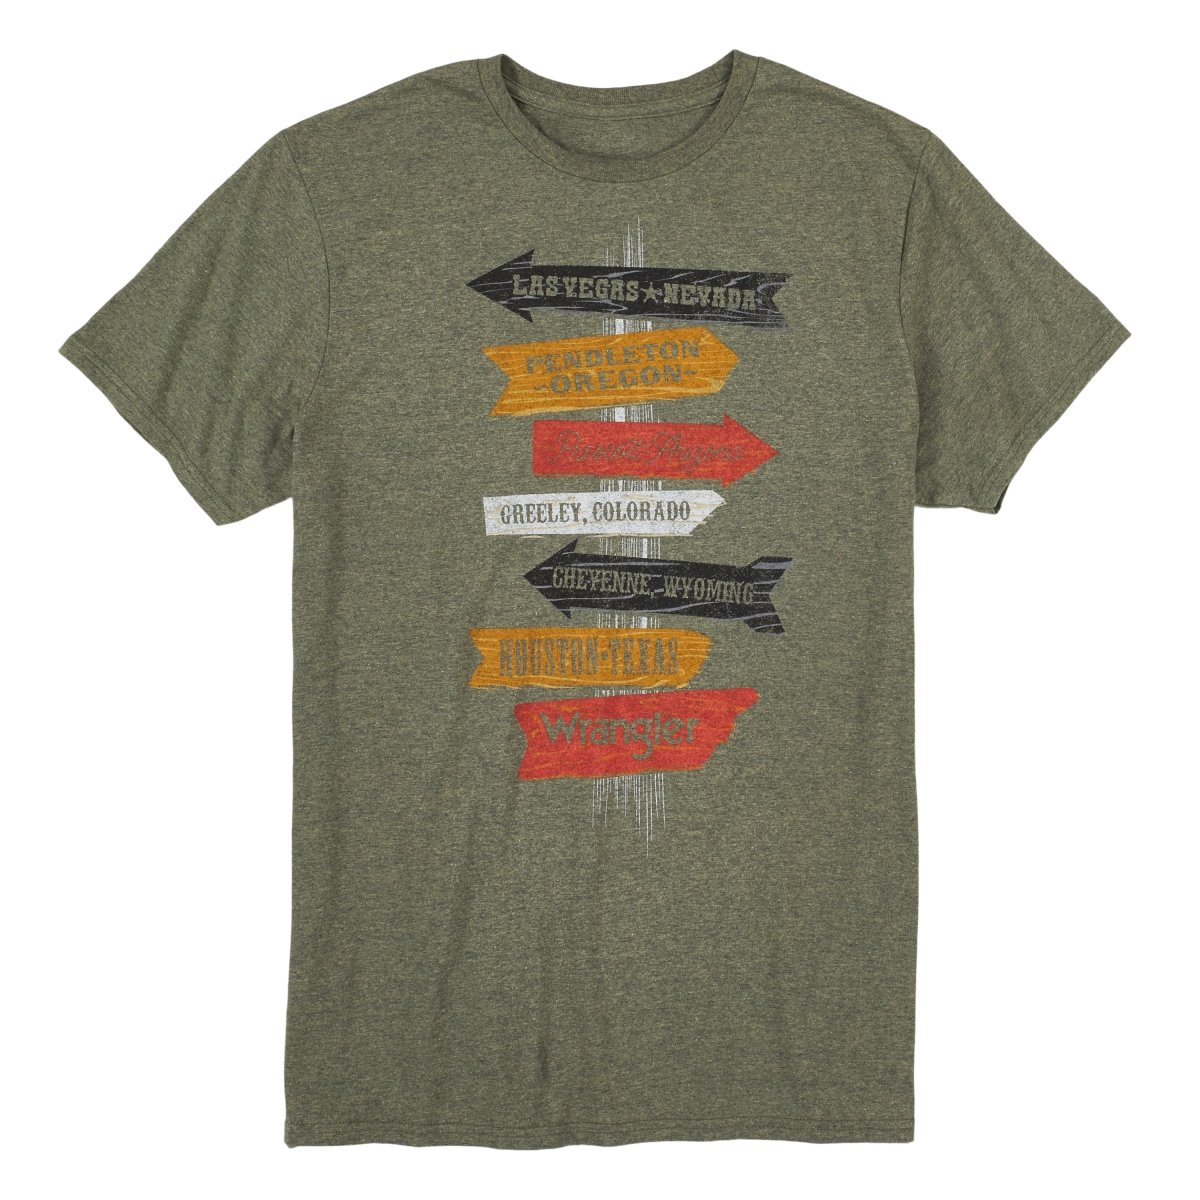 Directions Tee from Wrangler